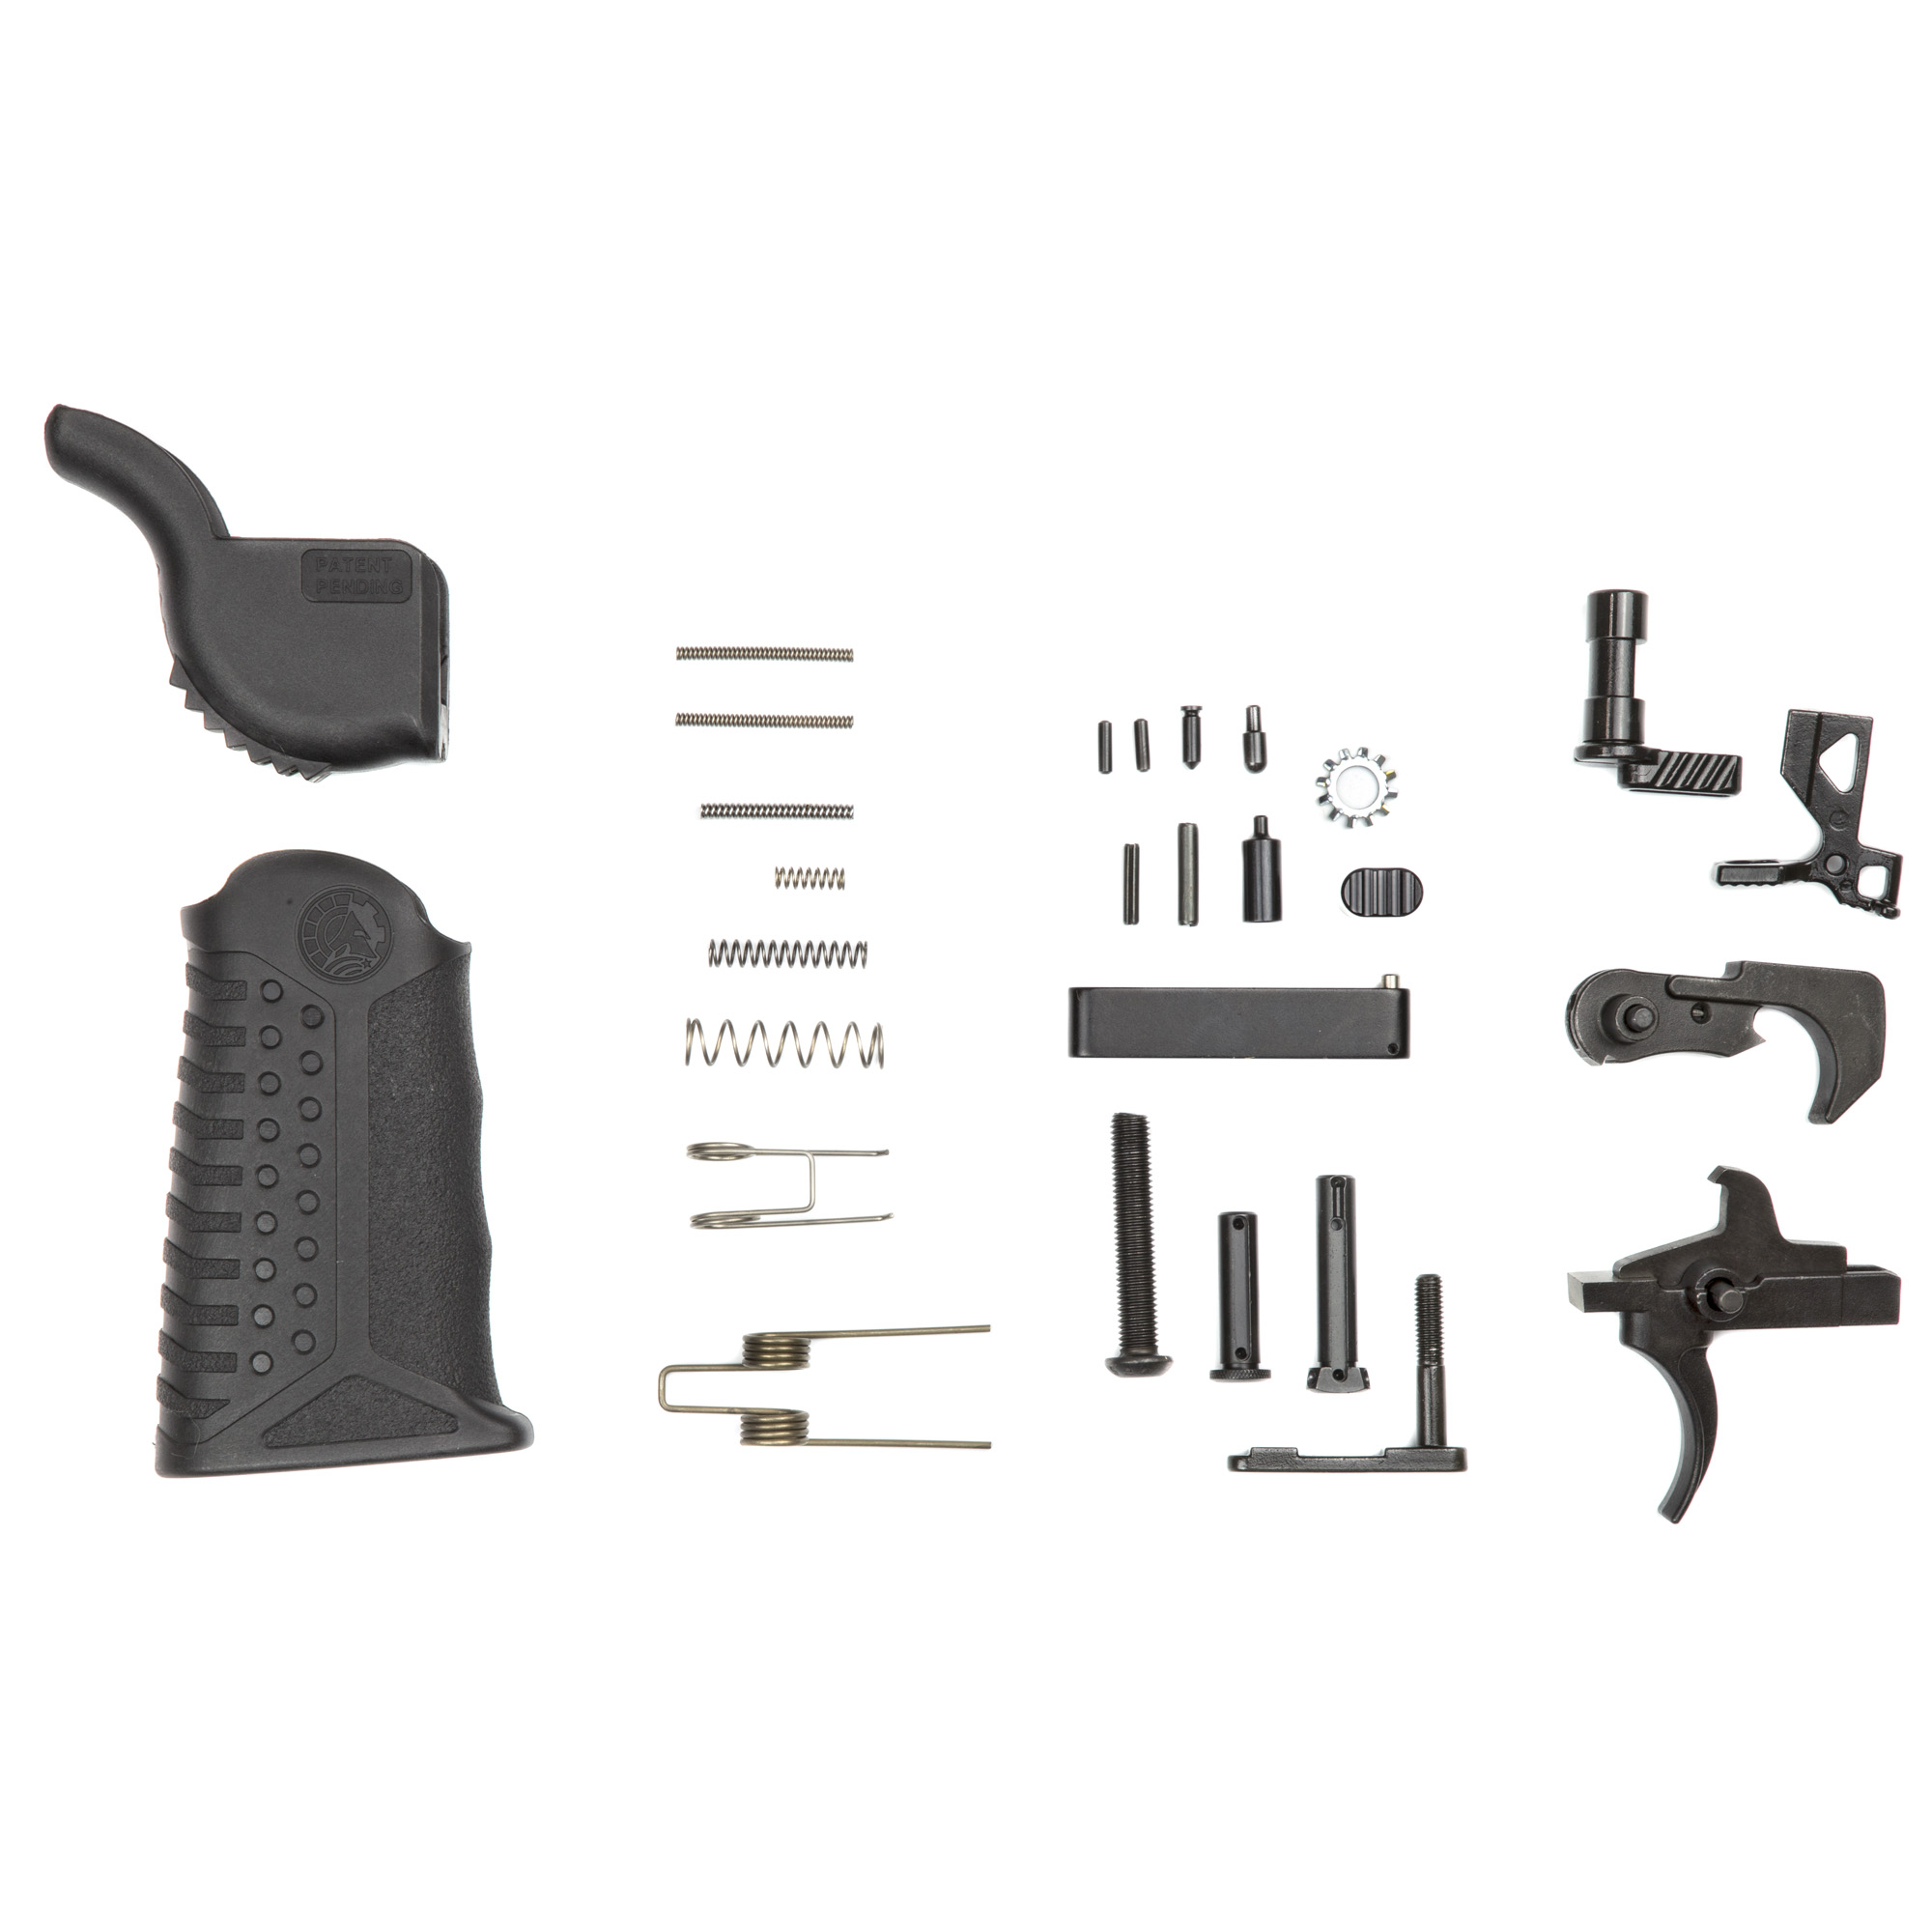 "The BAD-LPK-PKX Enhanced Complete Lower Parts Kit includes: Enhanced Bolt Catch"" Enhanced Single Sided Safety Selector"" Enhanced Magazine Catch"" Enhanced Magazine Release"" Adjustable Tactical Grip"" and the required pins"" springs and detents."